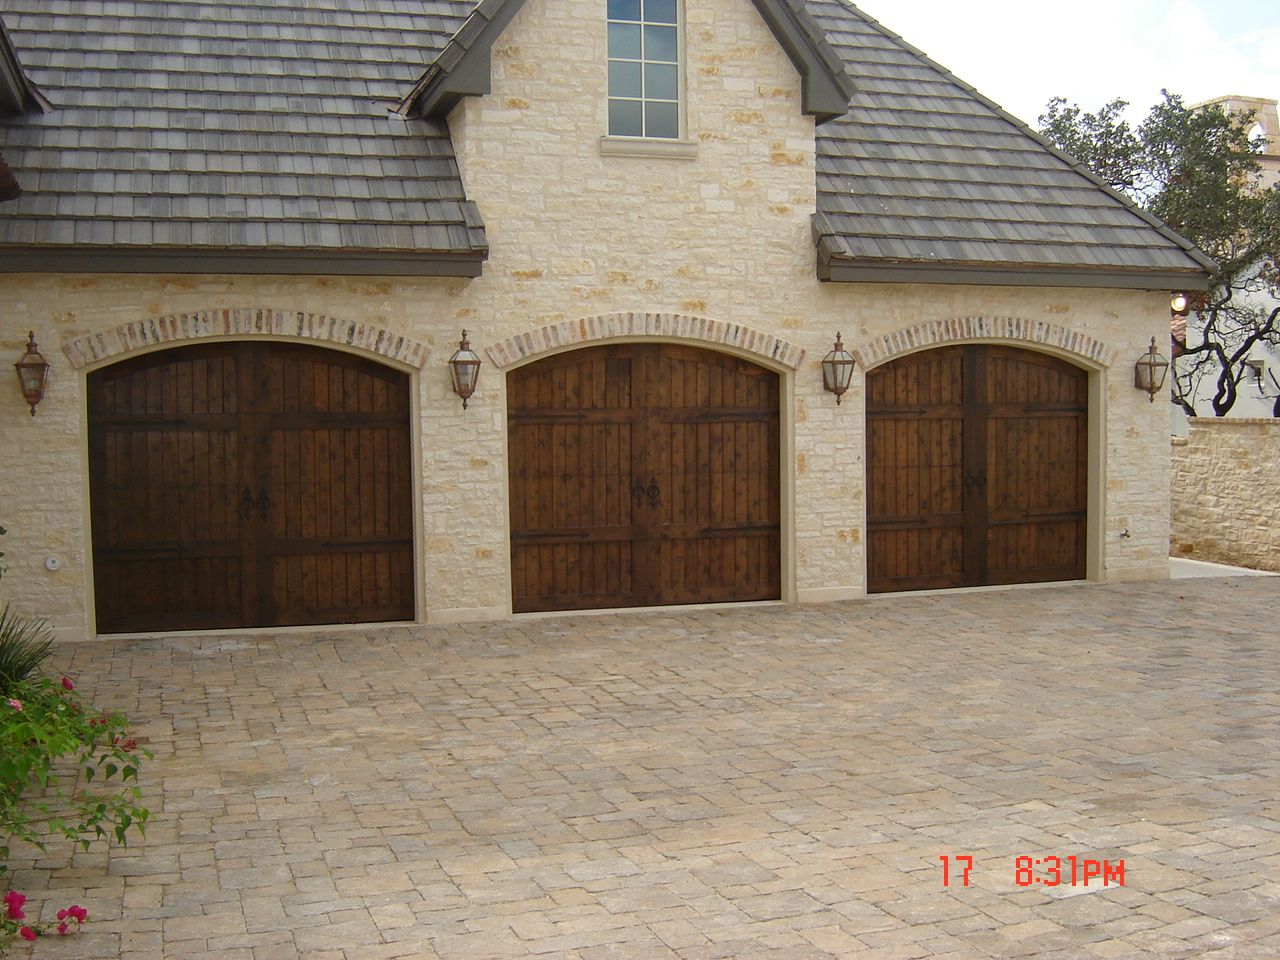 Love black garage doors on a brick detached garage exteriors cobble stone driveway and arched garage door rubansaba